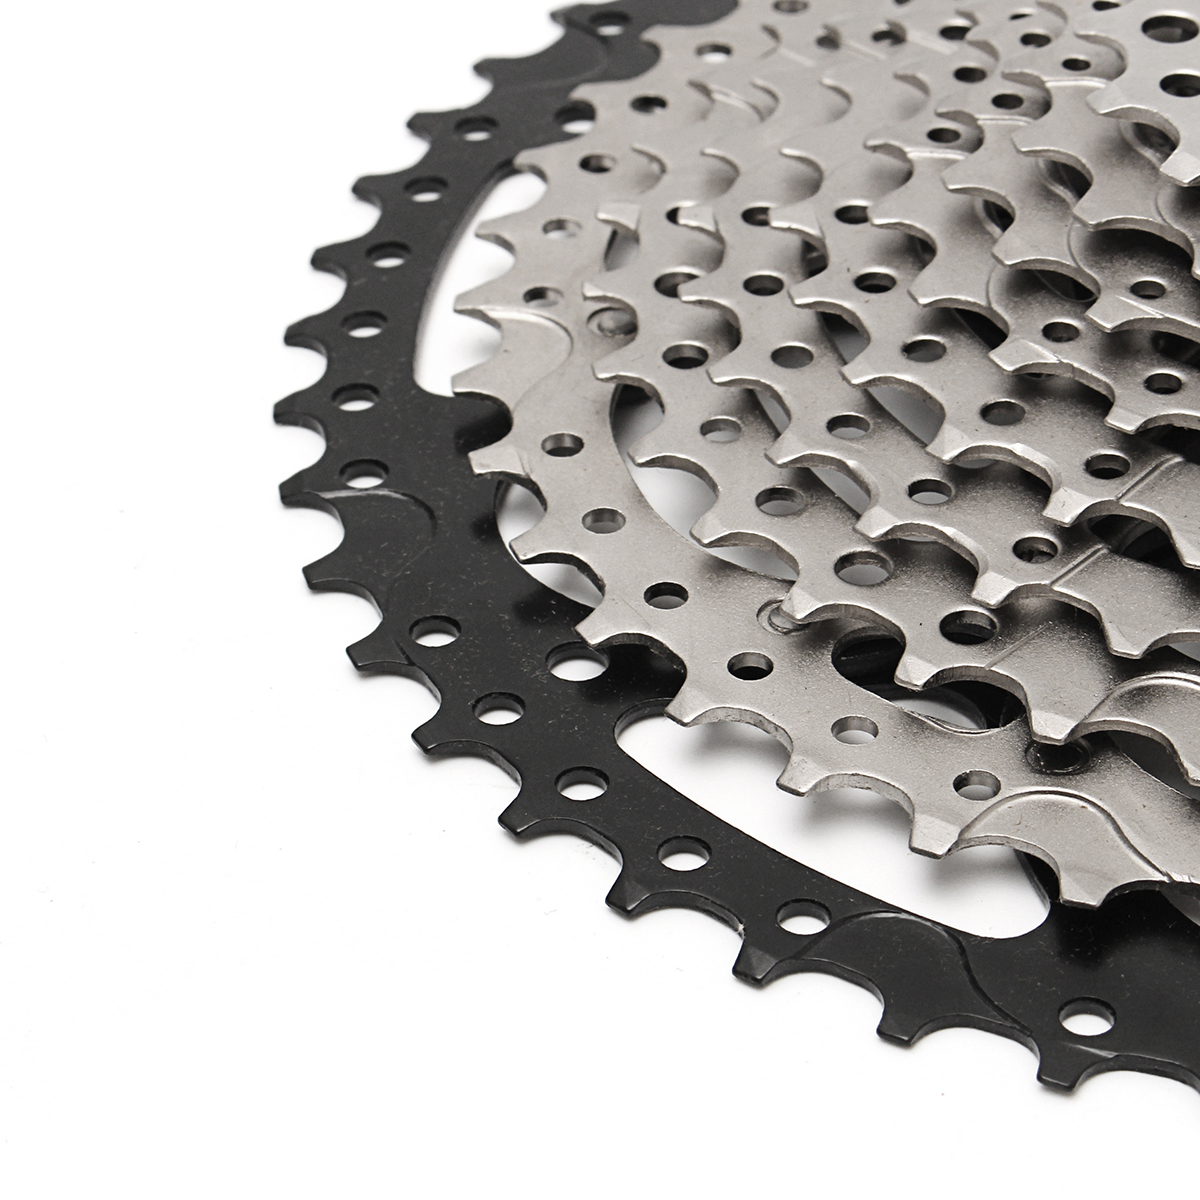 BIKIGHT 11-50T Mountain Cycling Freewheels 11 Speed Bicycle Flywheel Bike Cassette Part